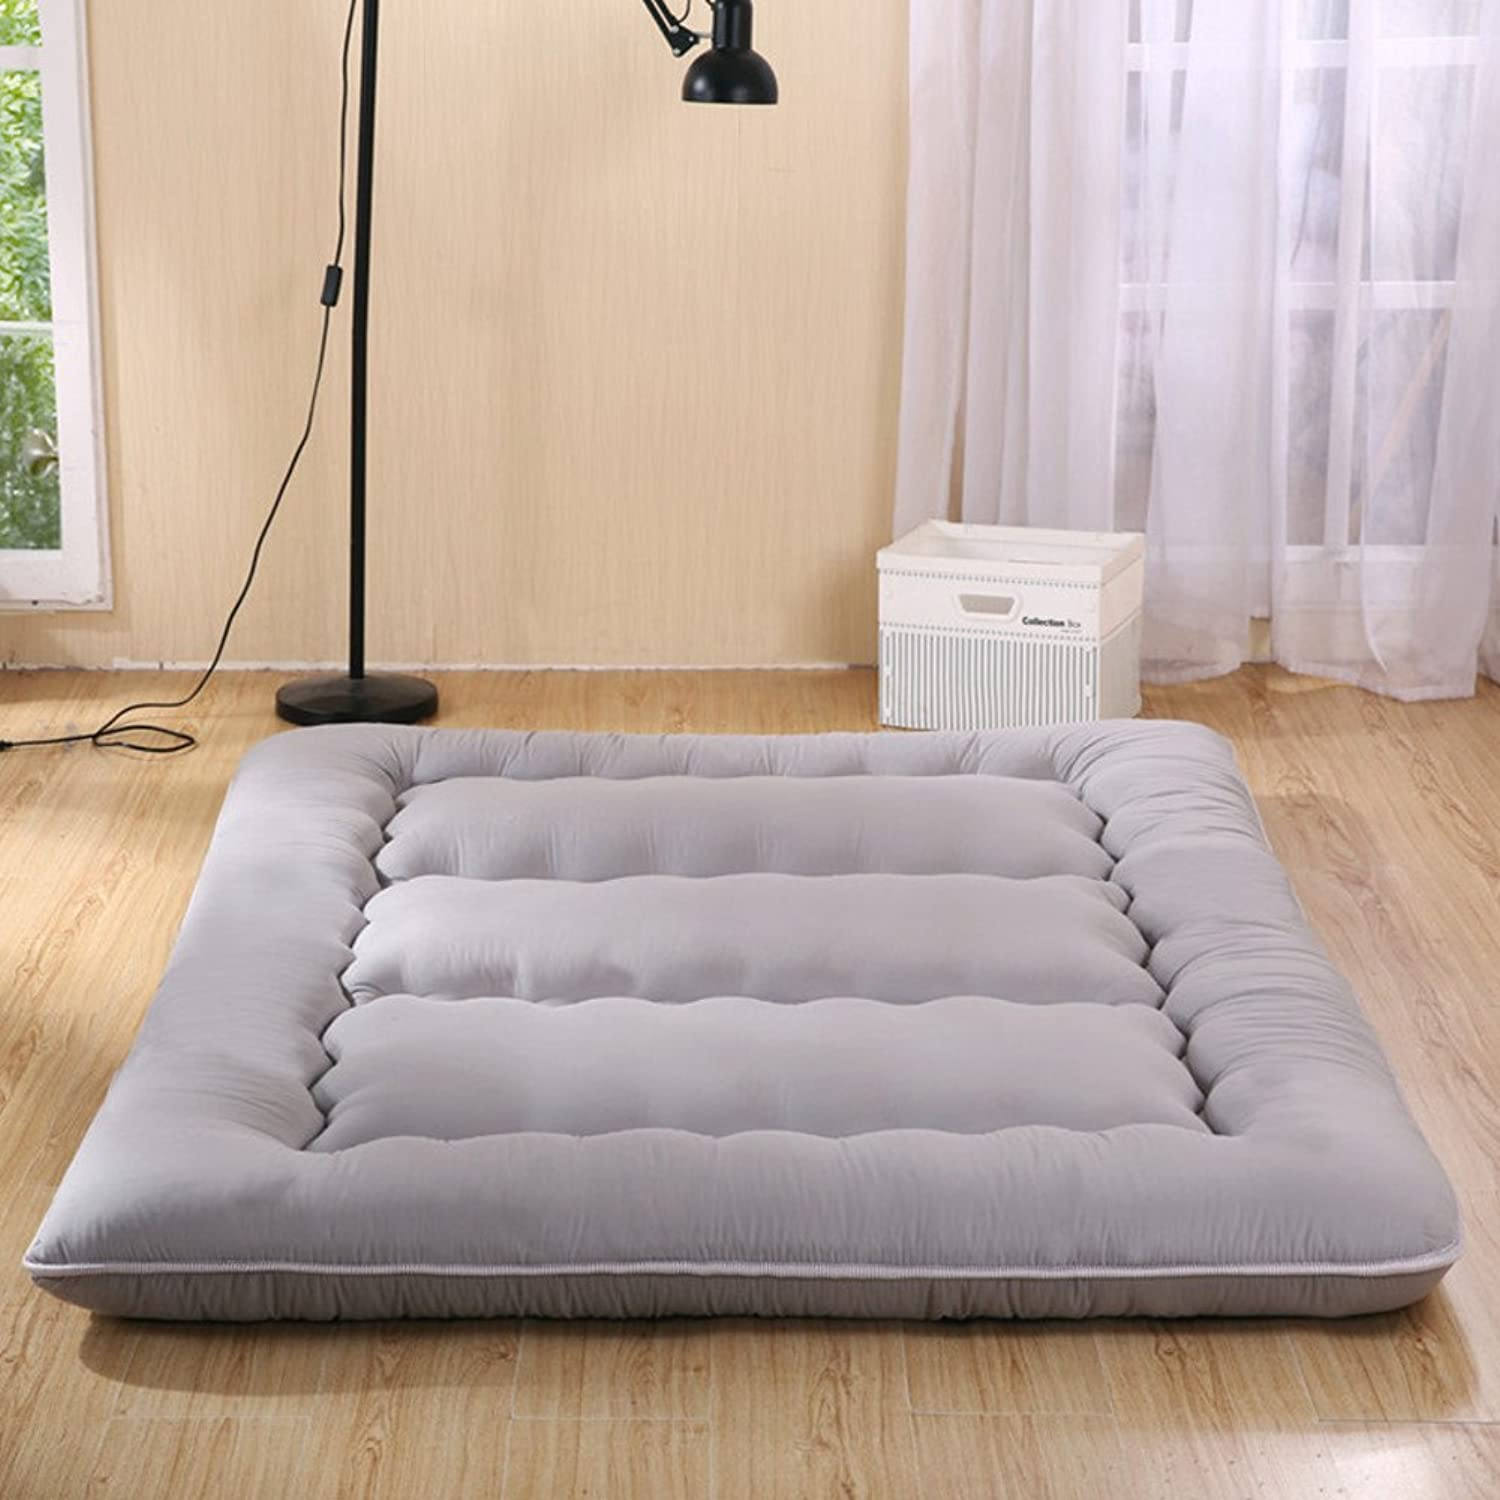 Collapsible Thickened Tatami Floor mat,Large Portable Various Sizes Dorm Queen-King Washable Futon Mattress Topper-B 120x200cm(47x79inch)